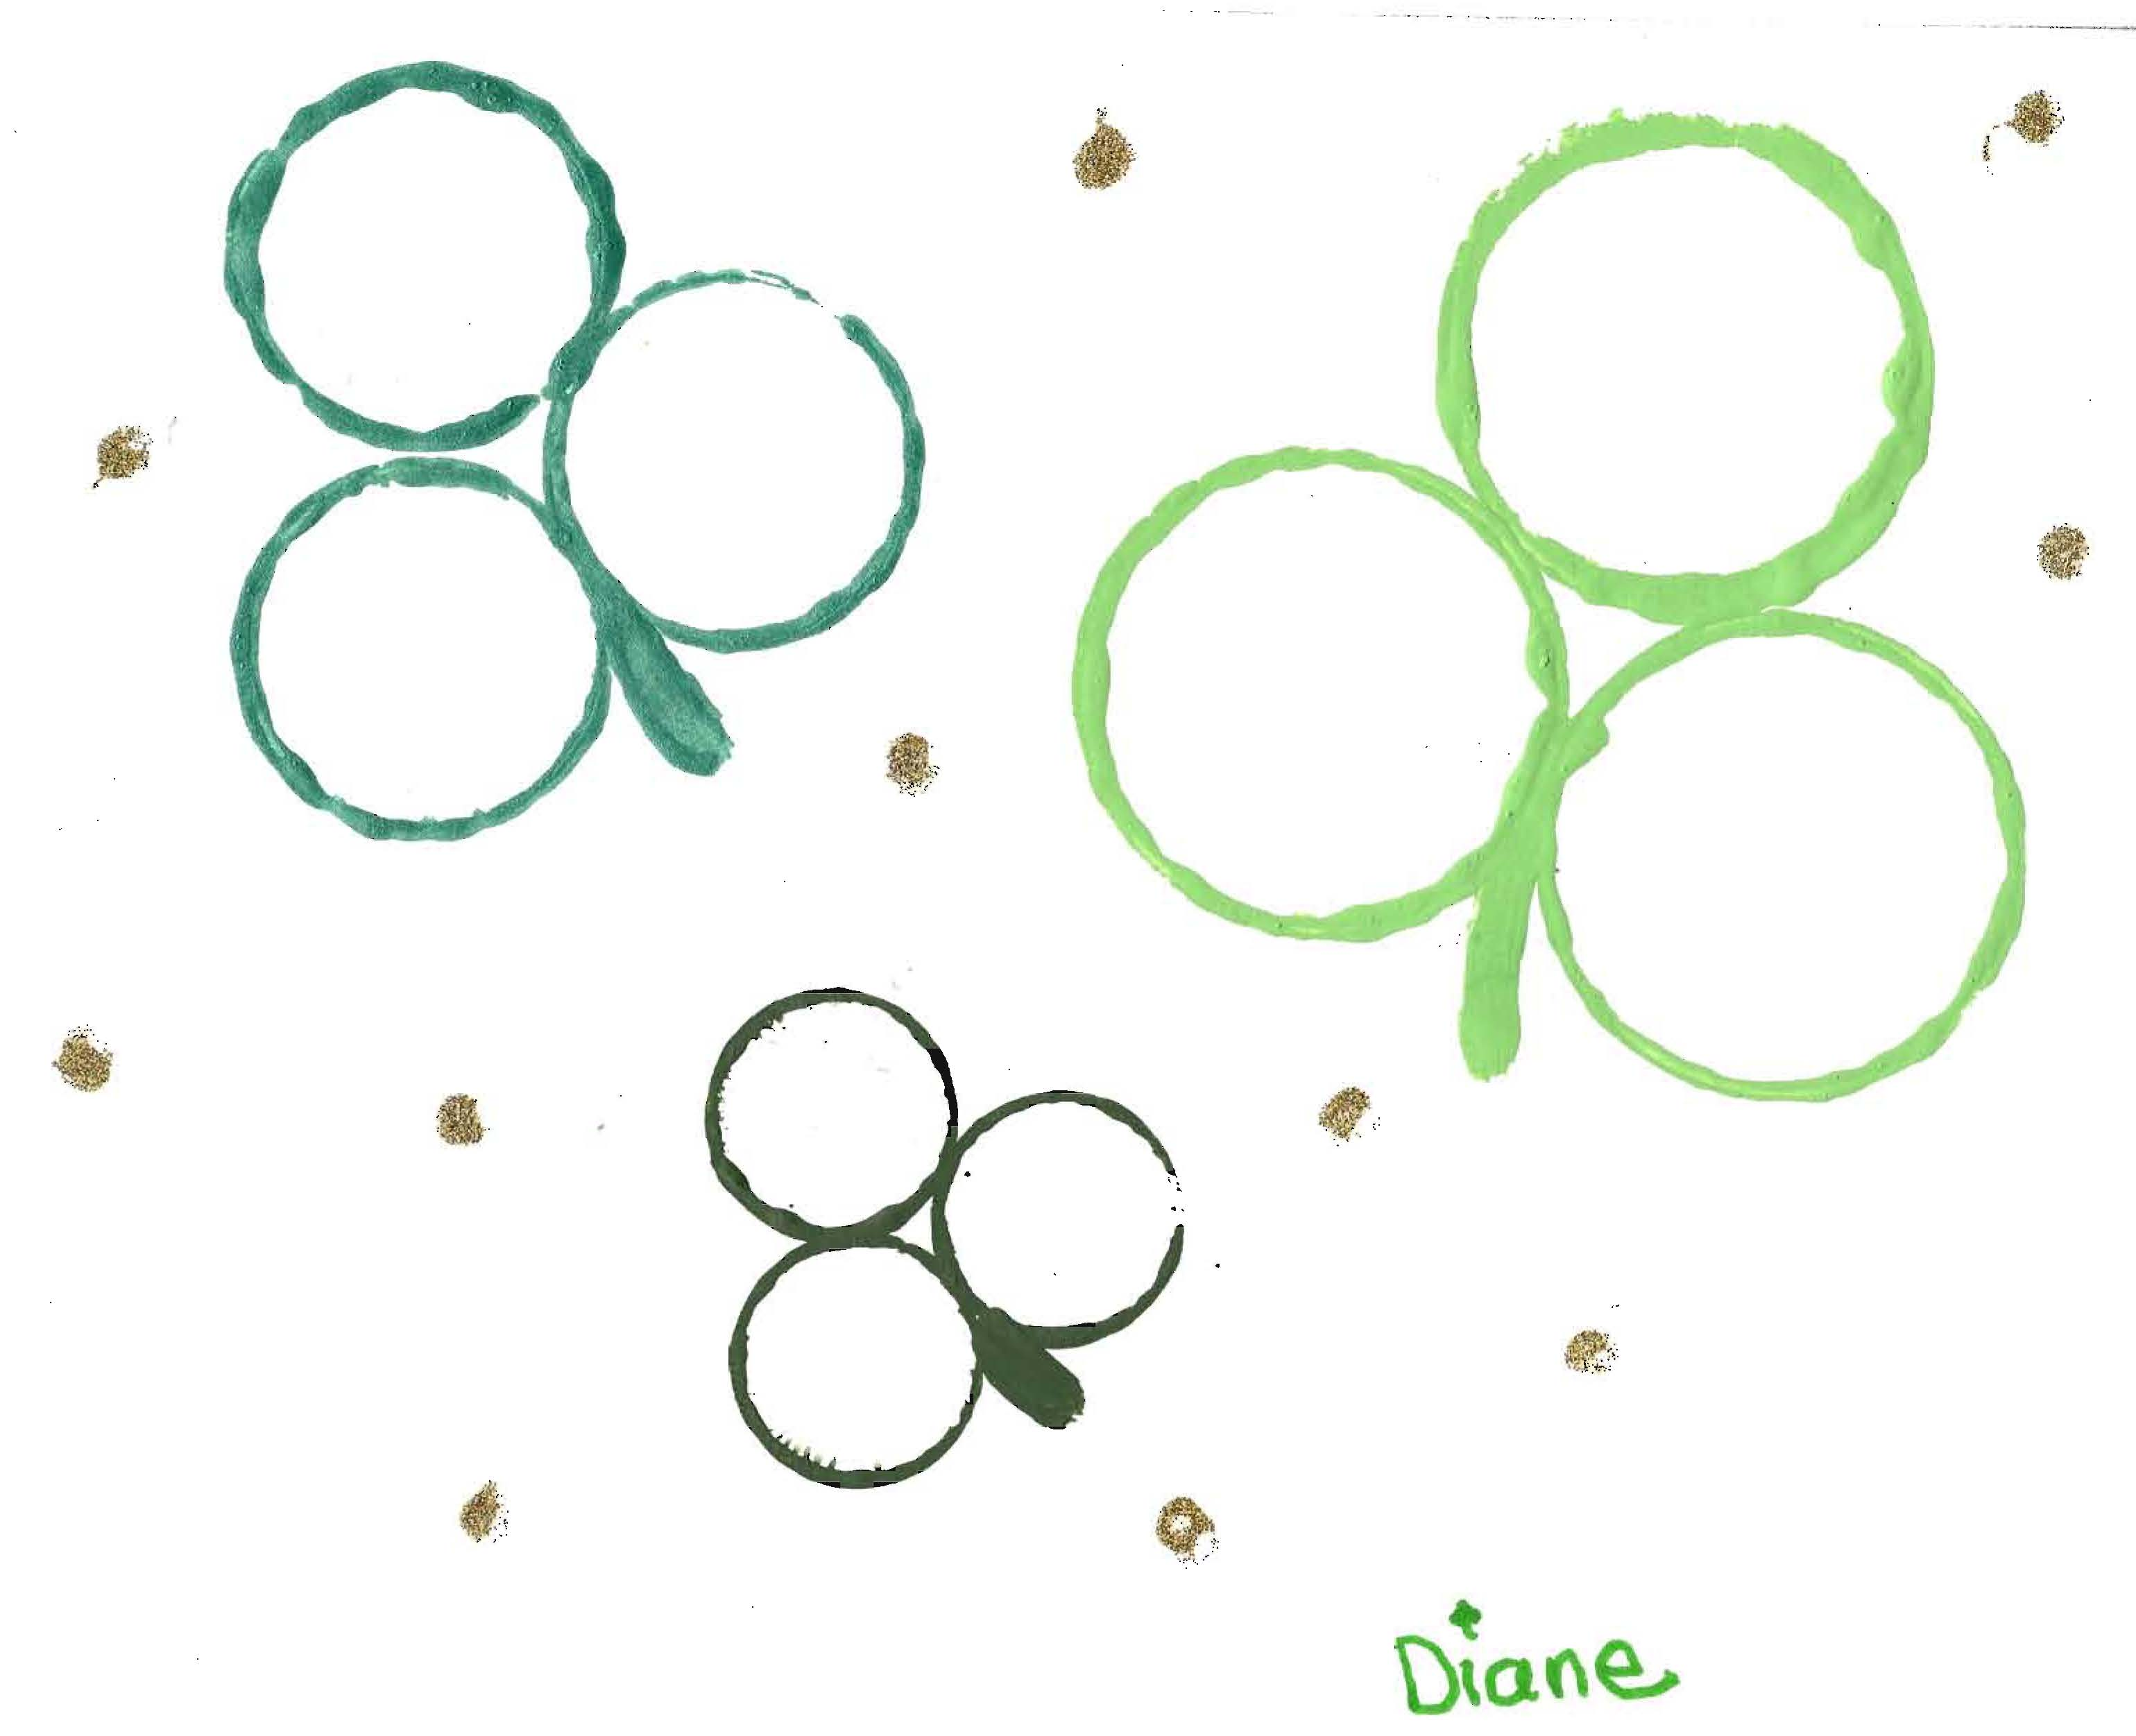 shamrock art, ideas for St. Patrick's Day, Crafts for kids for March, shamrock painting